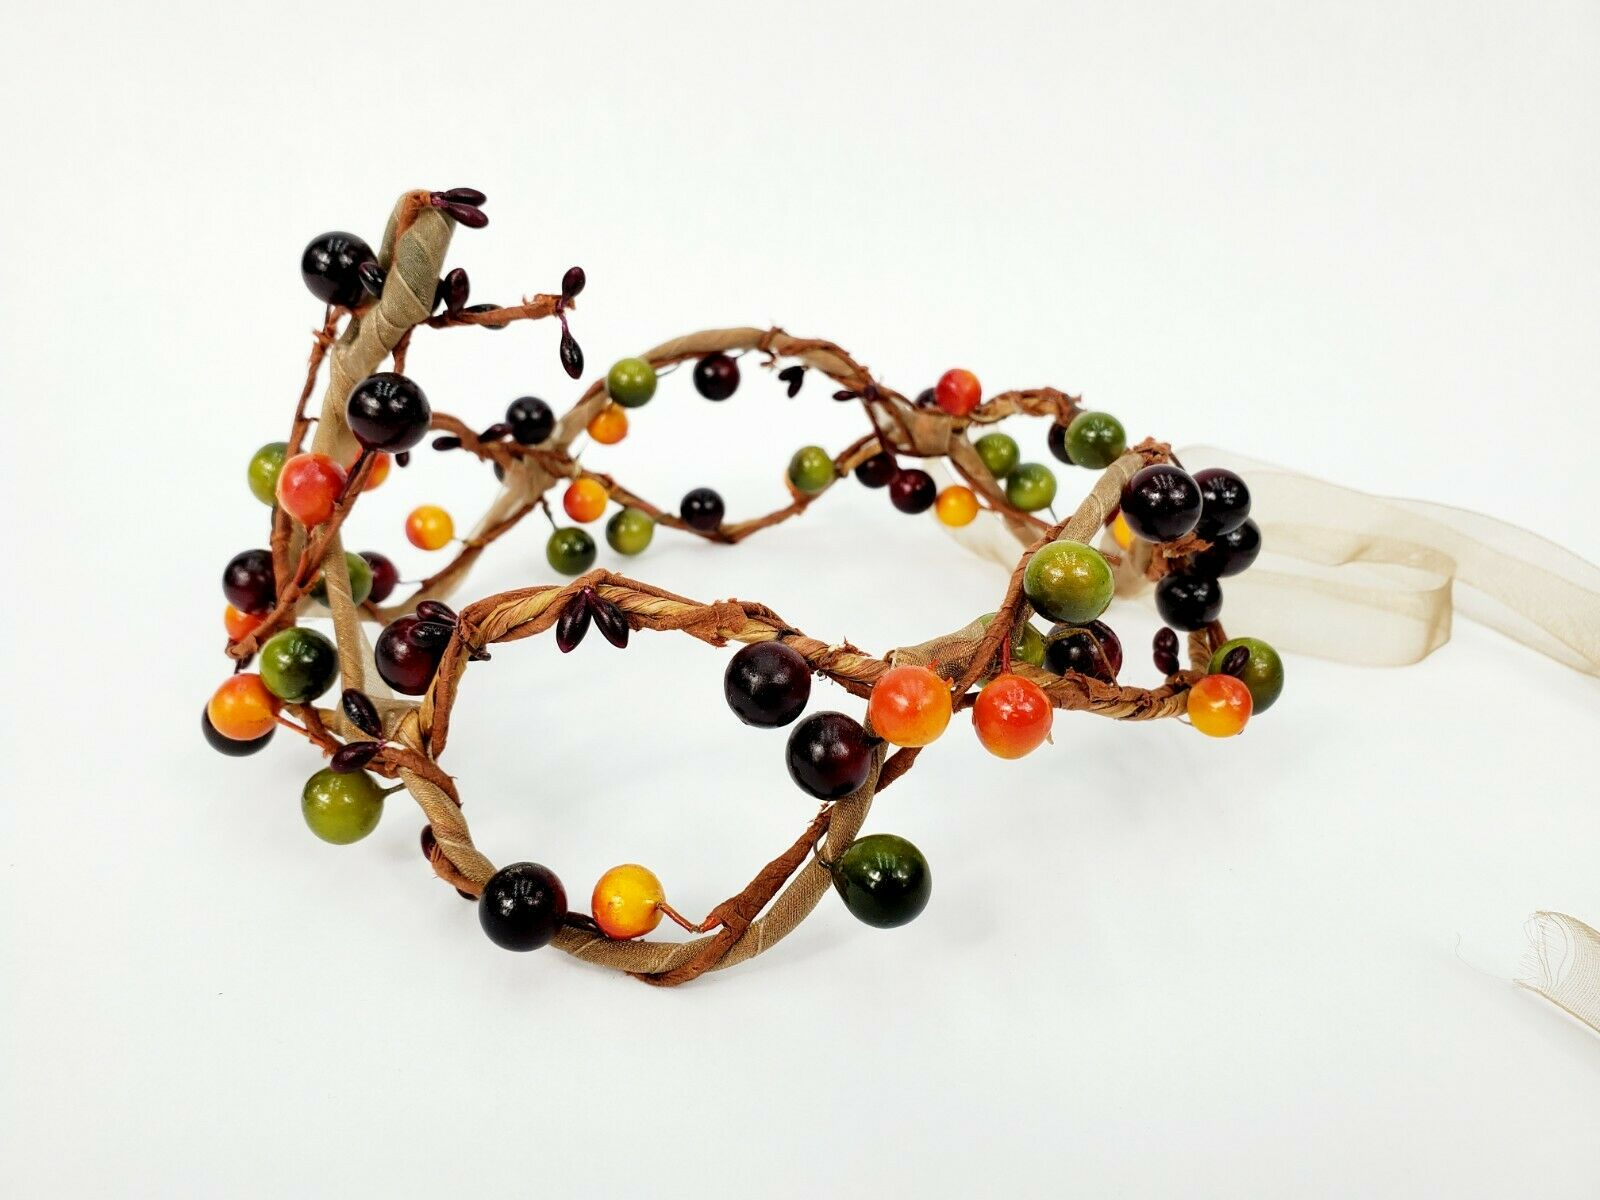 Artisan Made Faux Flower Crown For Weddings, Parties, Special Events Etc. - NEW